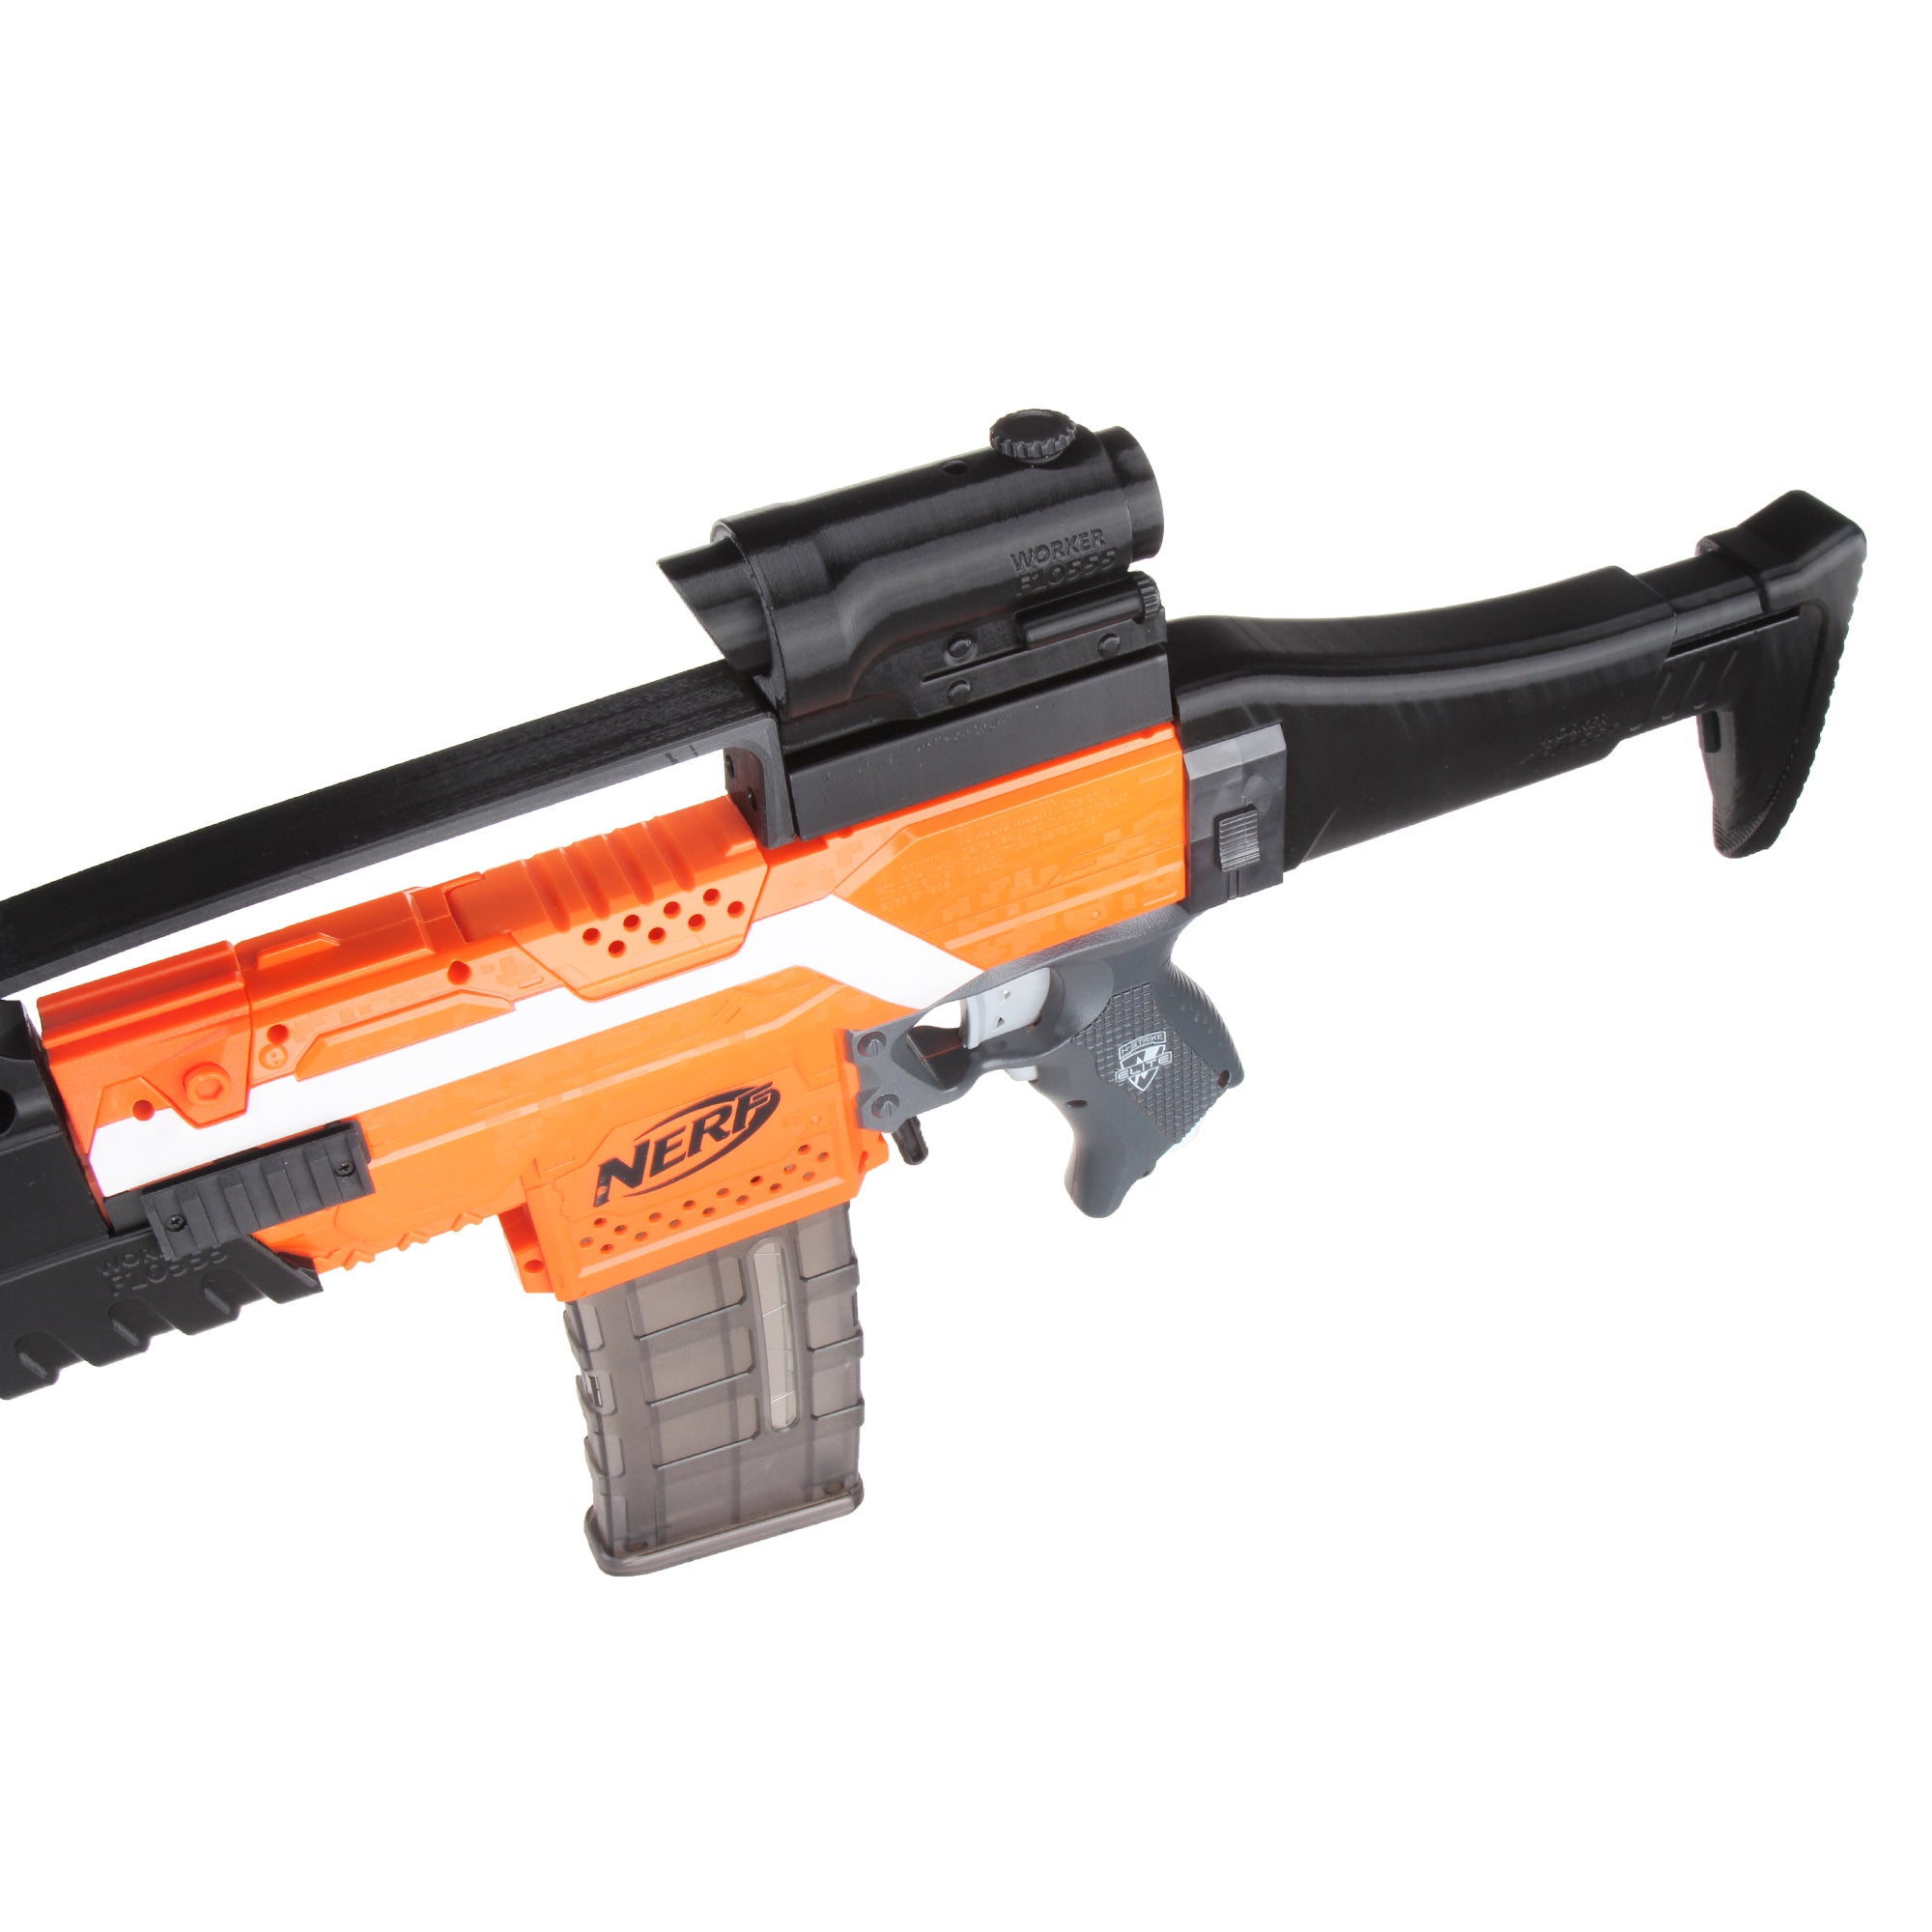 JGCWorker STF-W010 XM8 Mod Kits Set With Orange Adaptor And Long Front Tube for Nerf N-Strike Elite Stryfe Blaster - Nerf Mod Kits -Worker Mod Kits